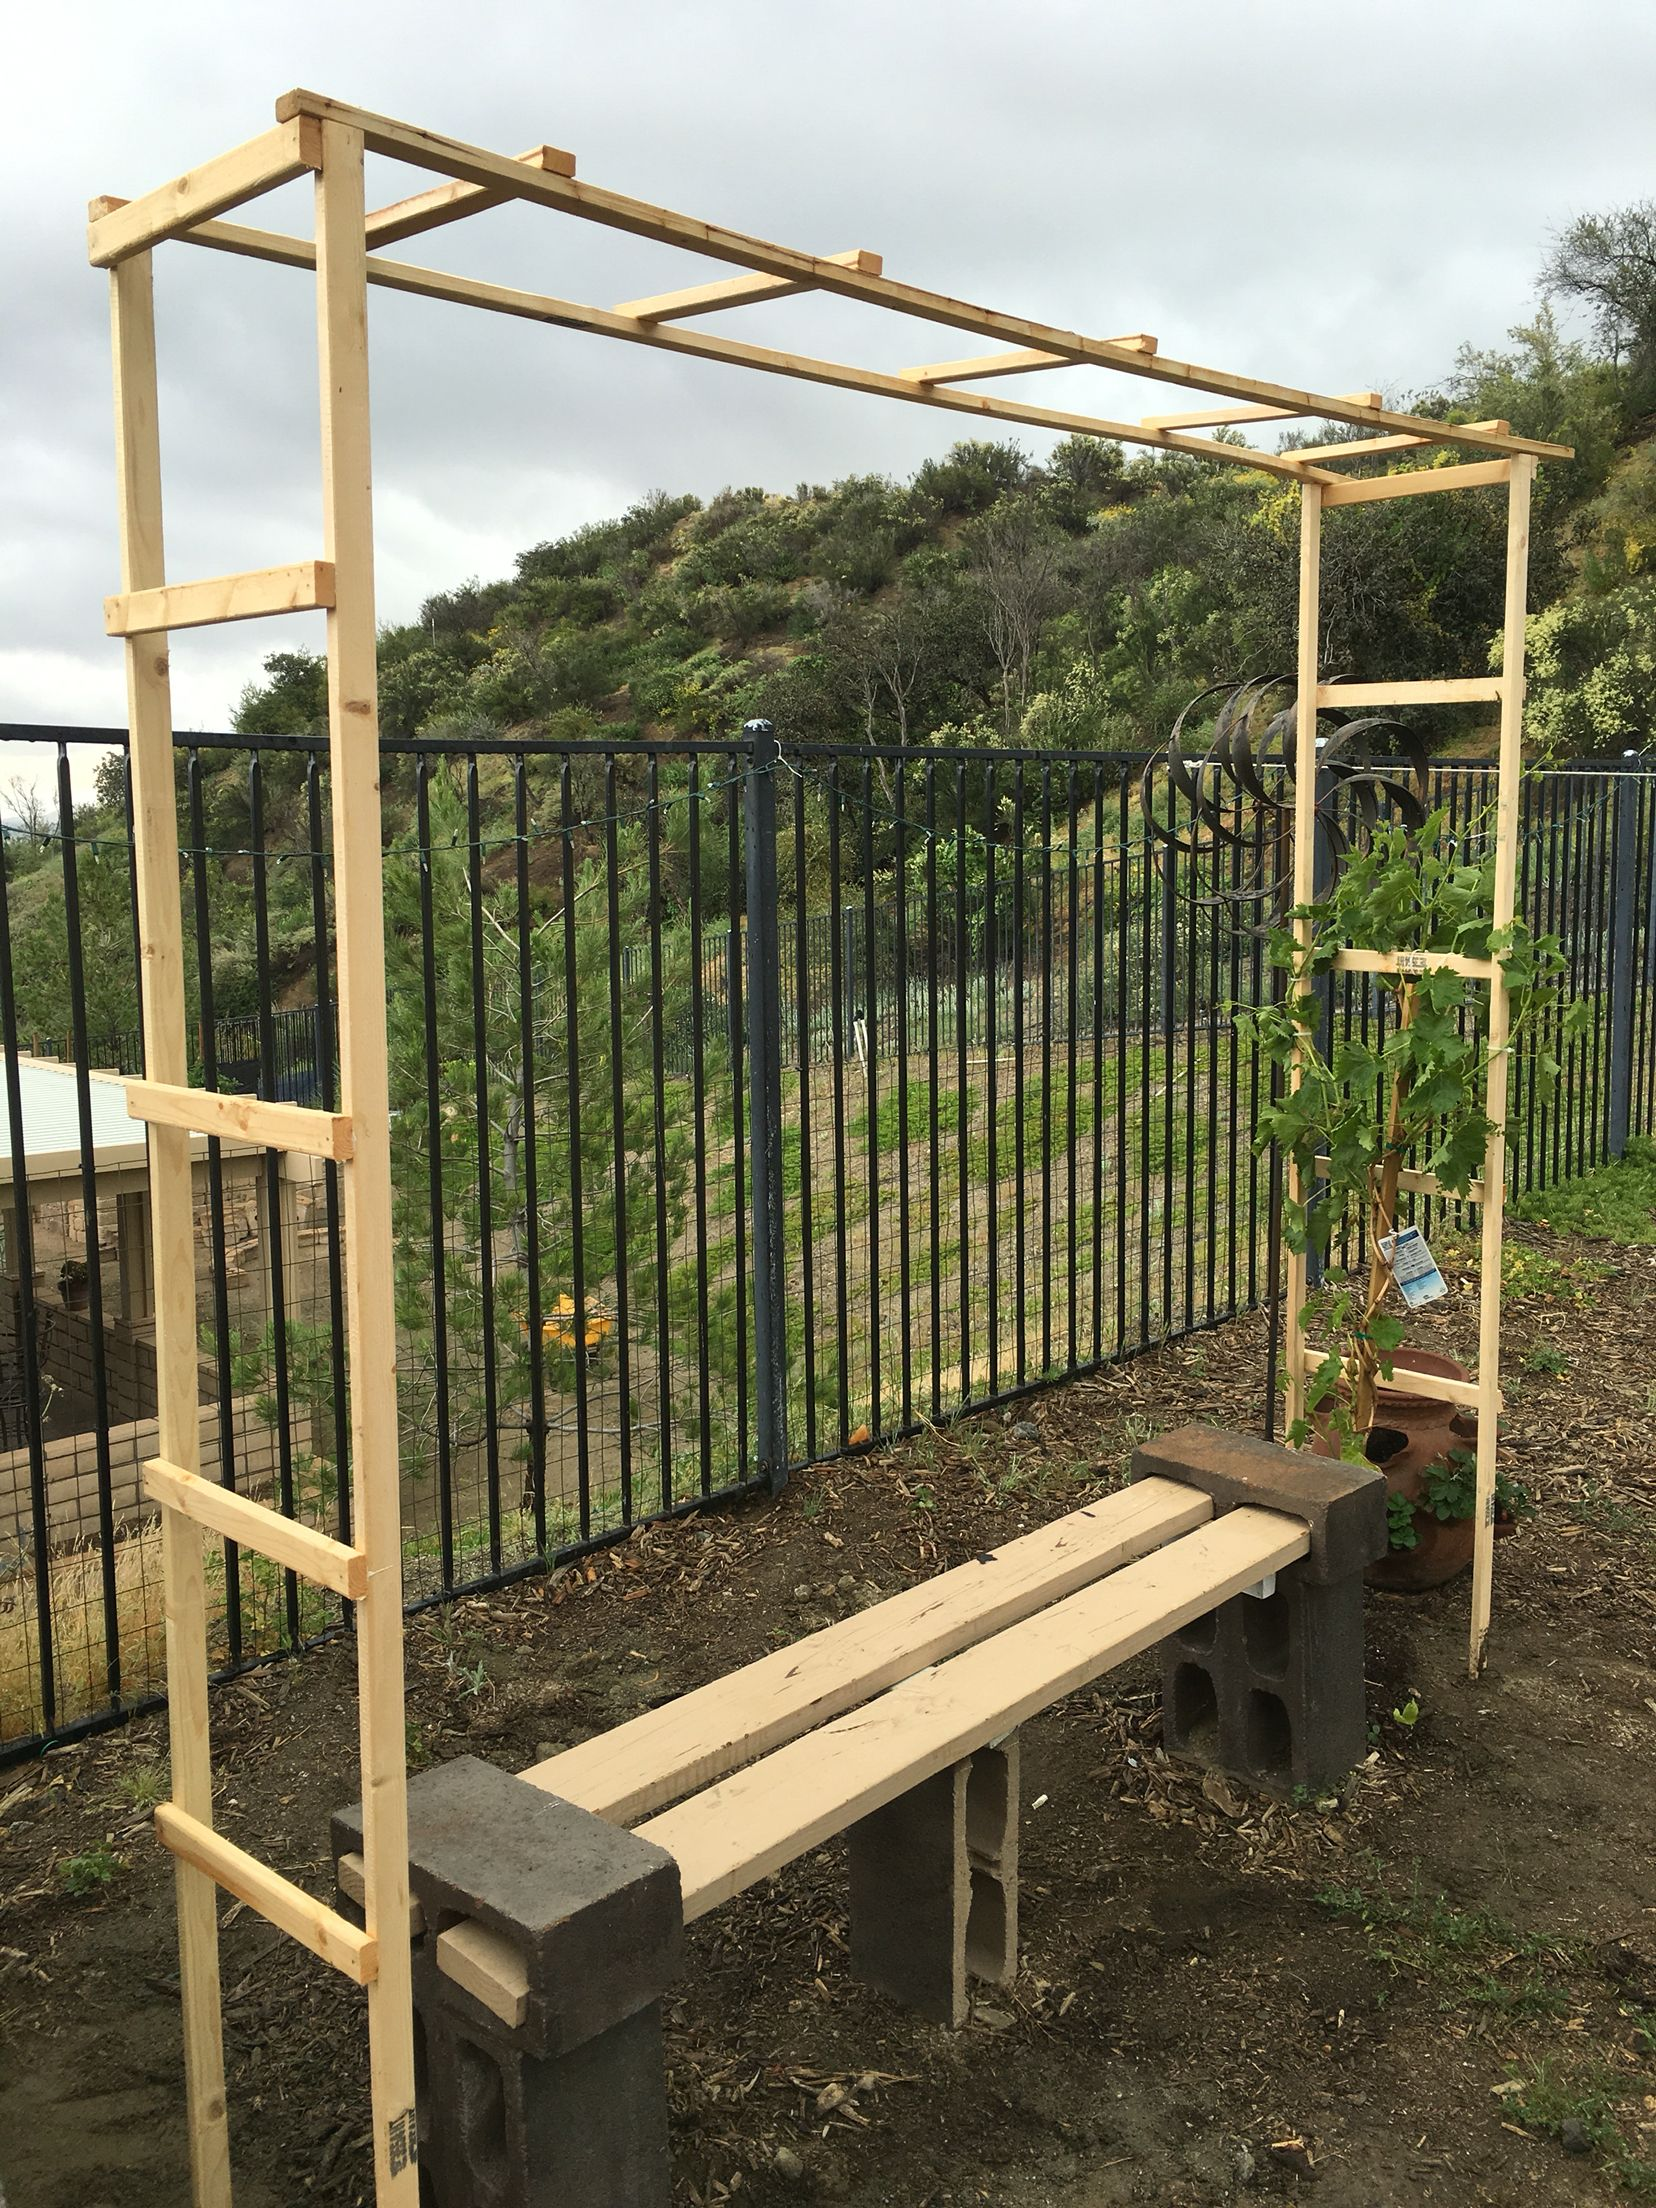 Trellis for my grape vine simple diy under $10 | Garden Ideas ...